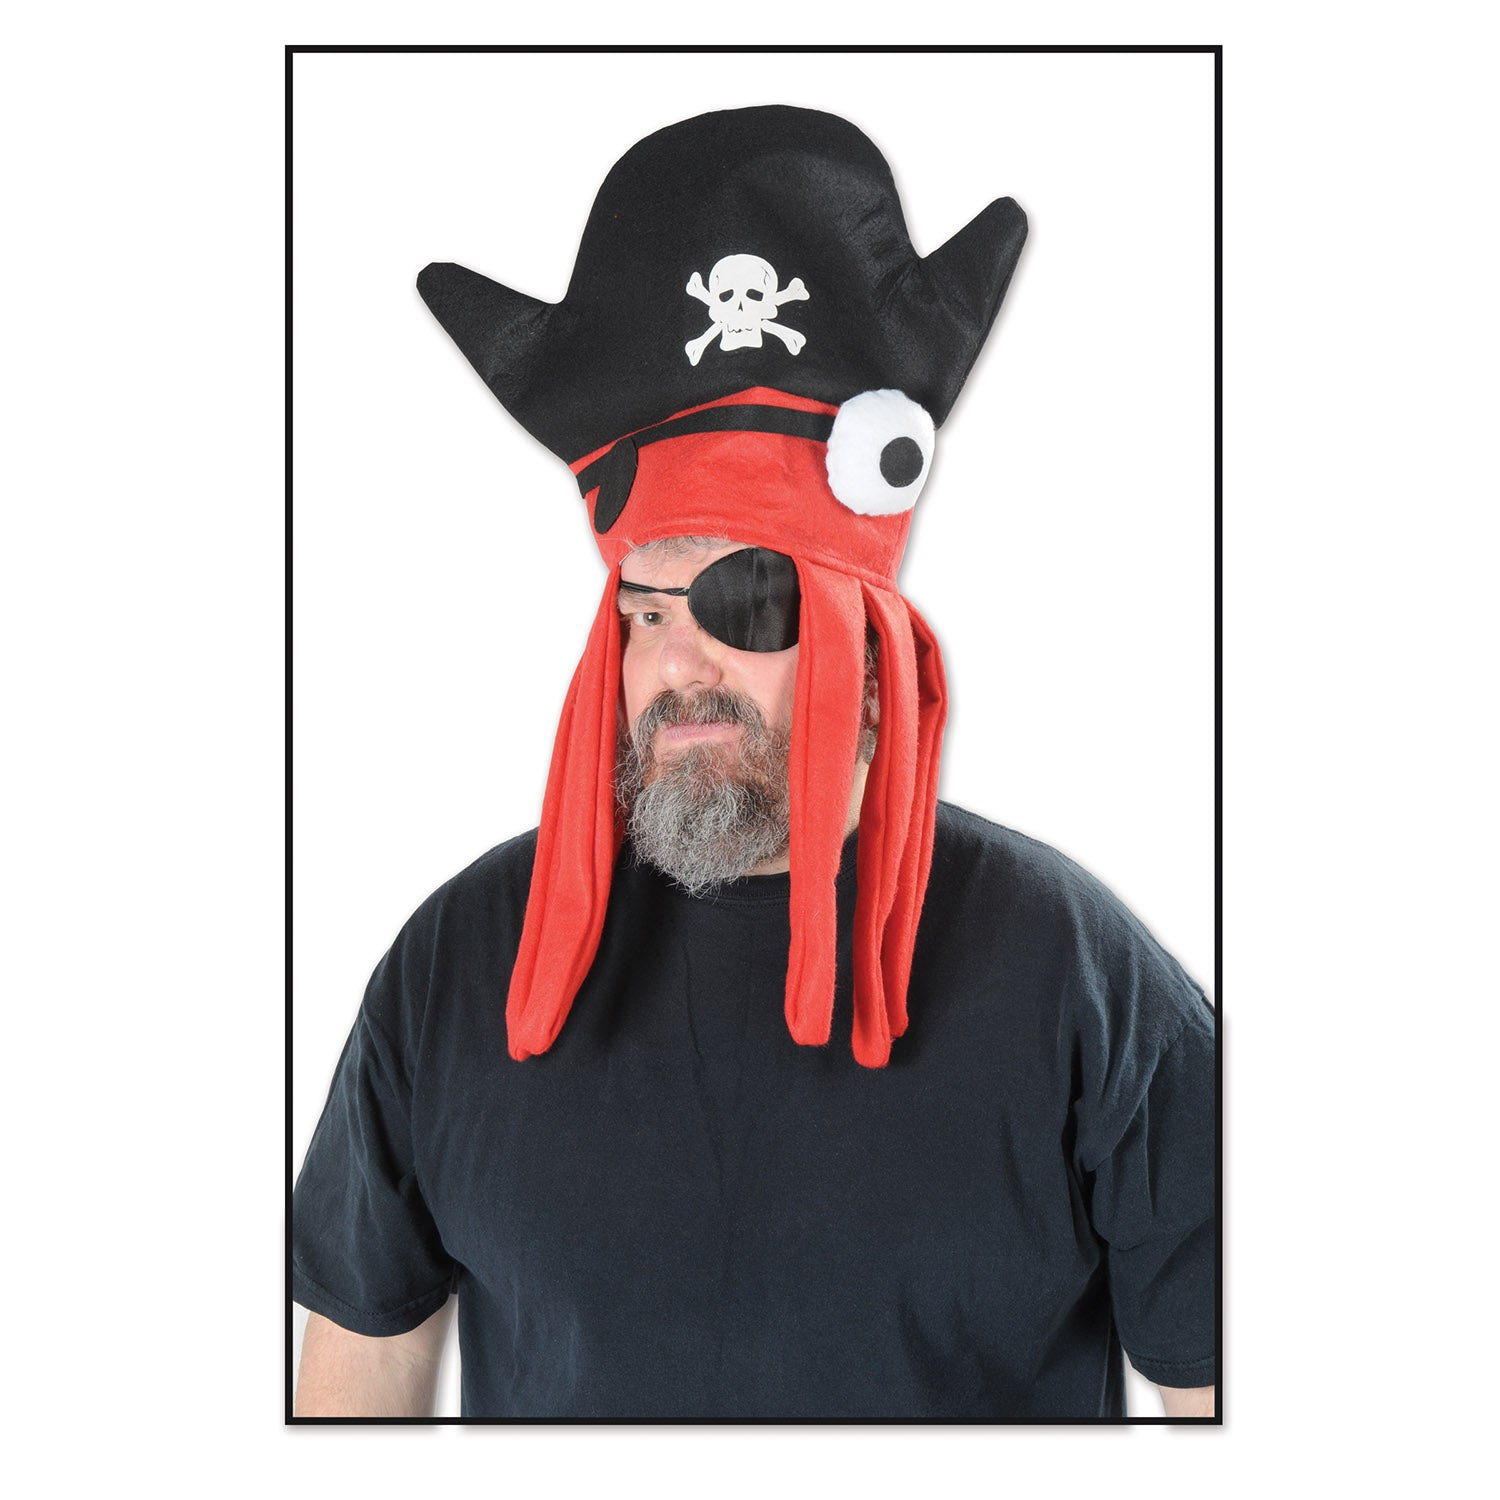 Felt Pirate Squid Hat by Beistle - Pirate Theme Decorations